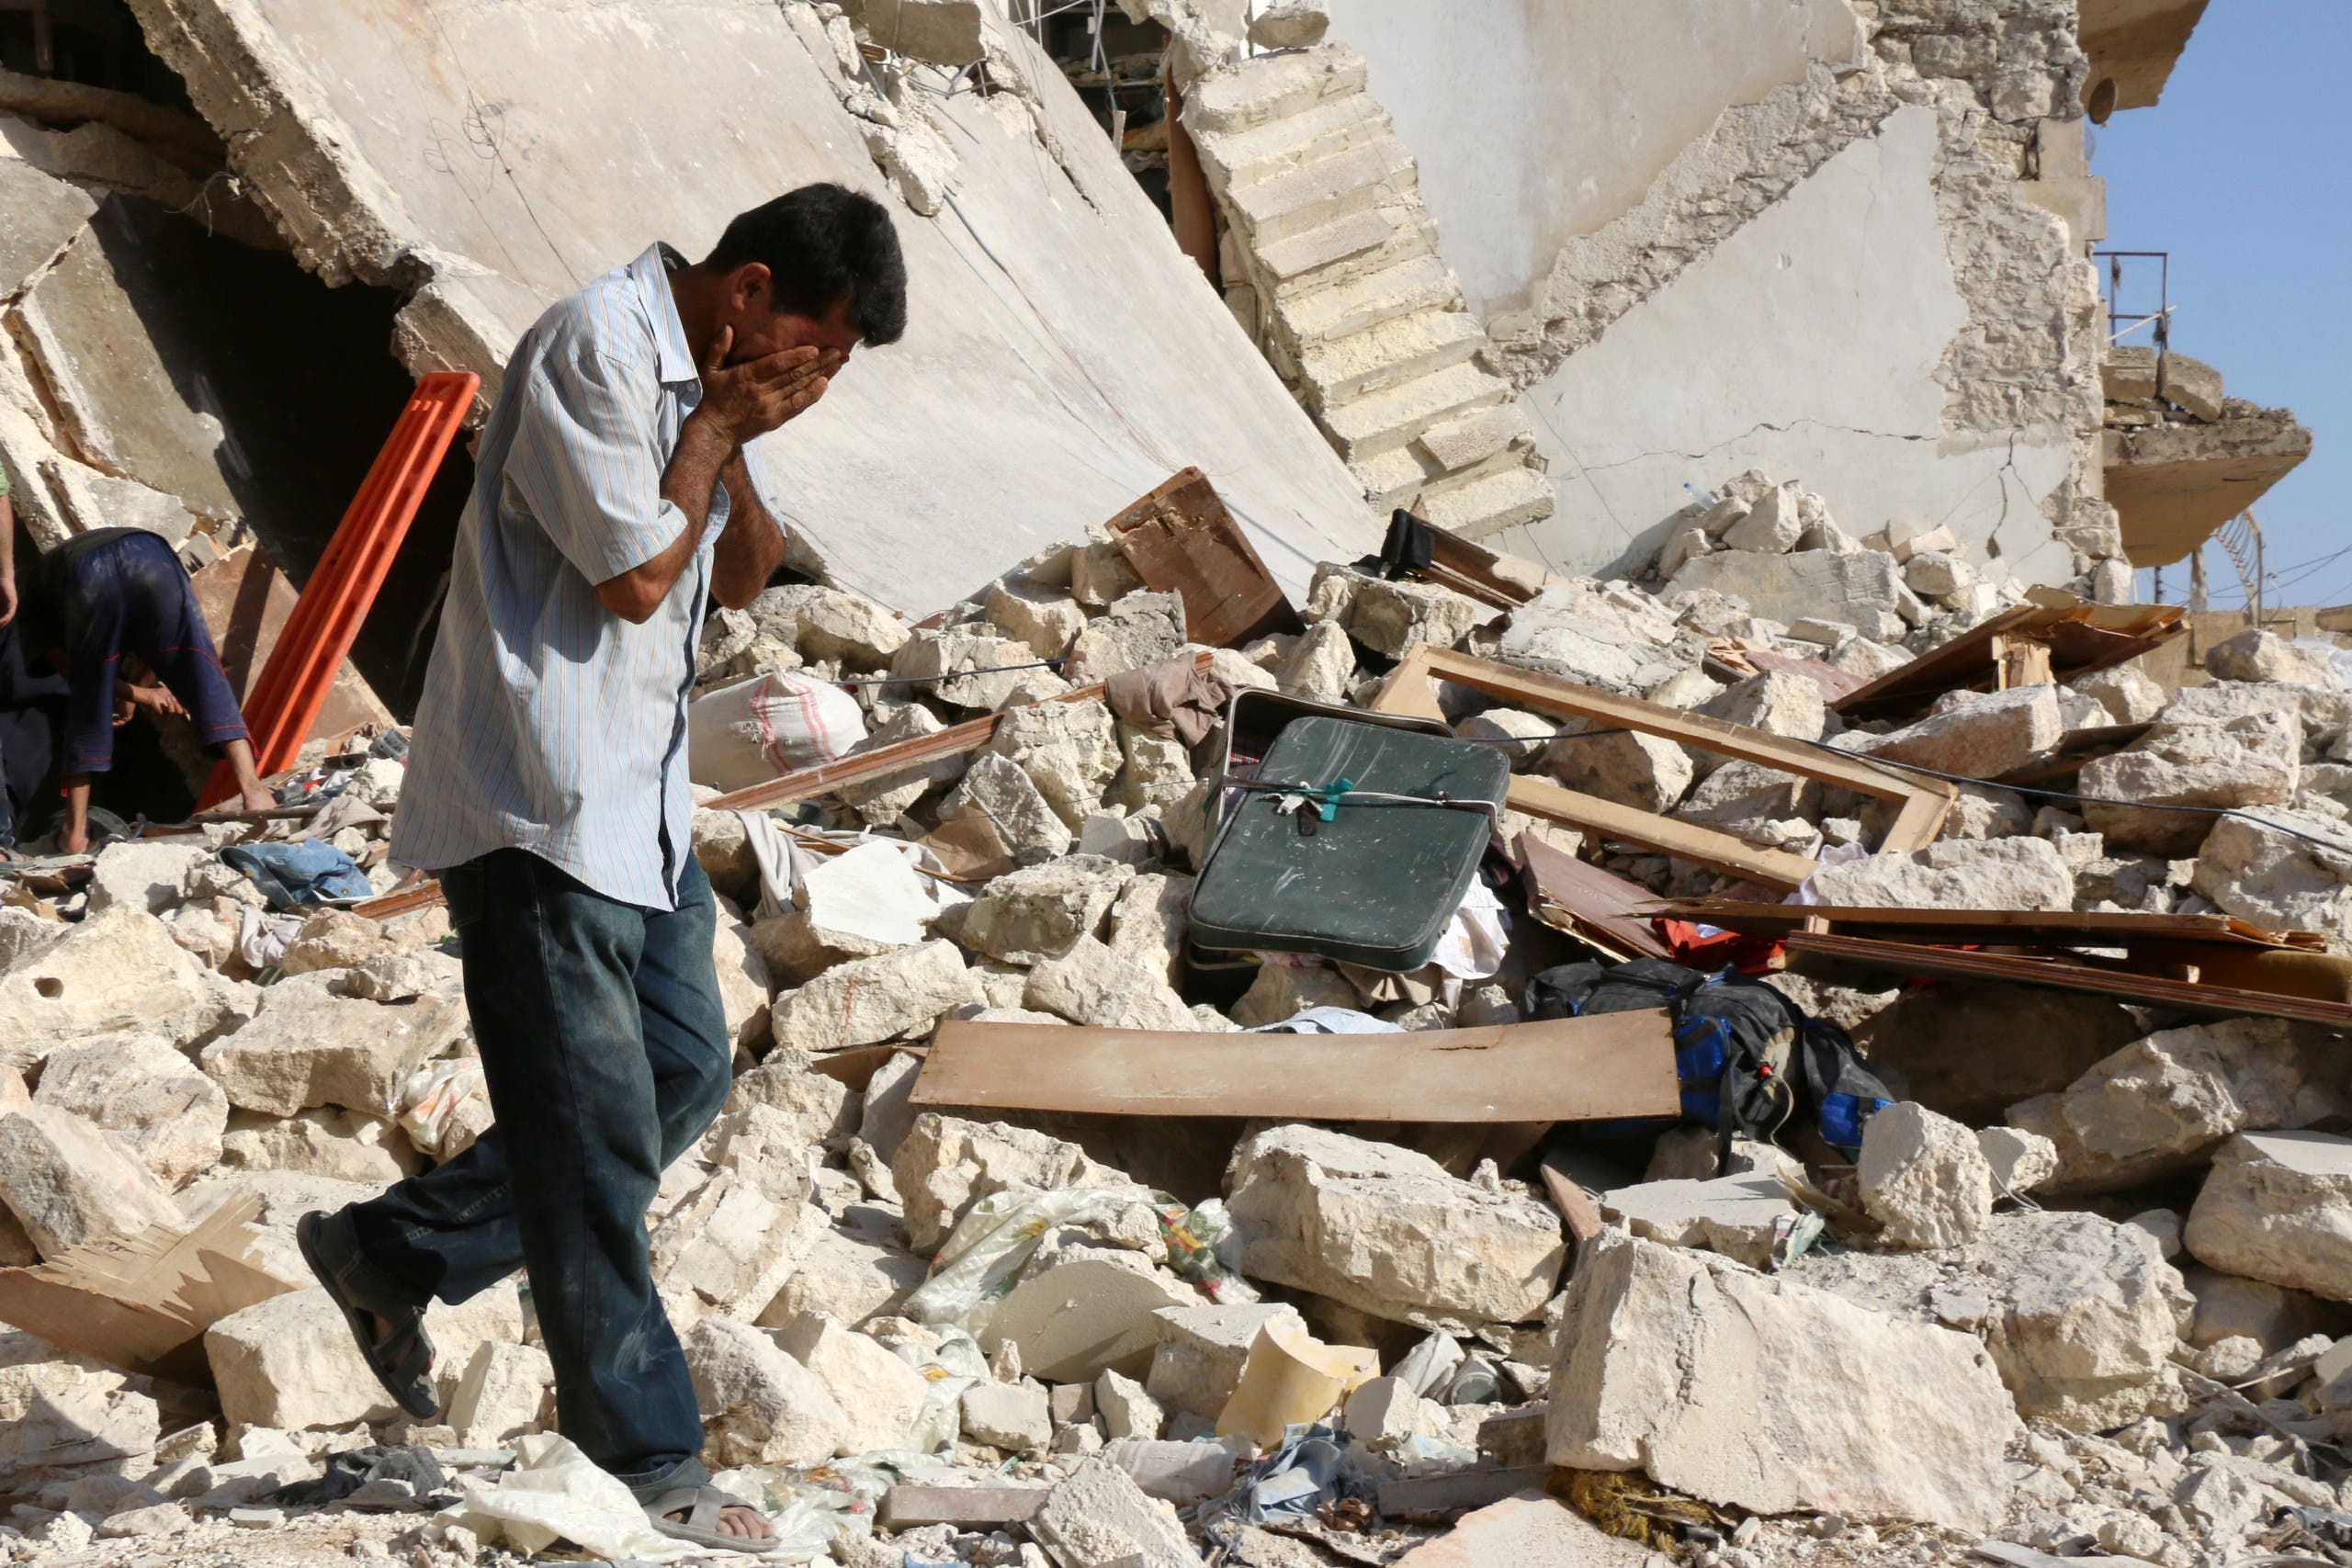 A Syrian man reacts as rescuers look for victims under the rubble of a collapsed building following a reported air strike on the rebel-held neighbourhood of Sakhur in the northern city of Aleppo on July 19, 2016